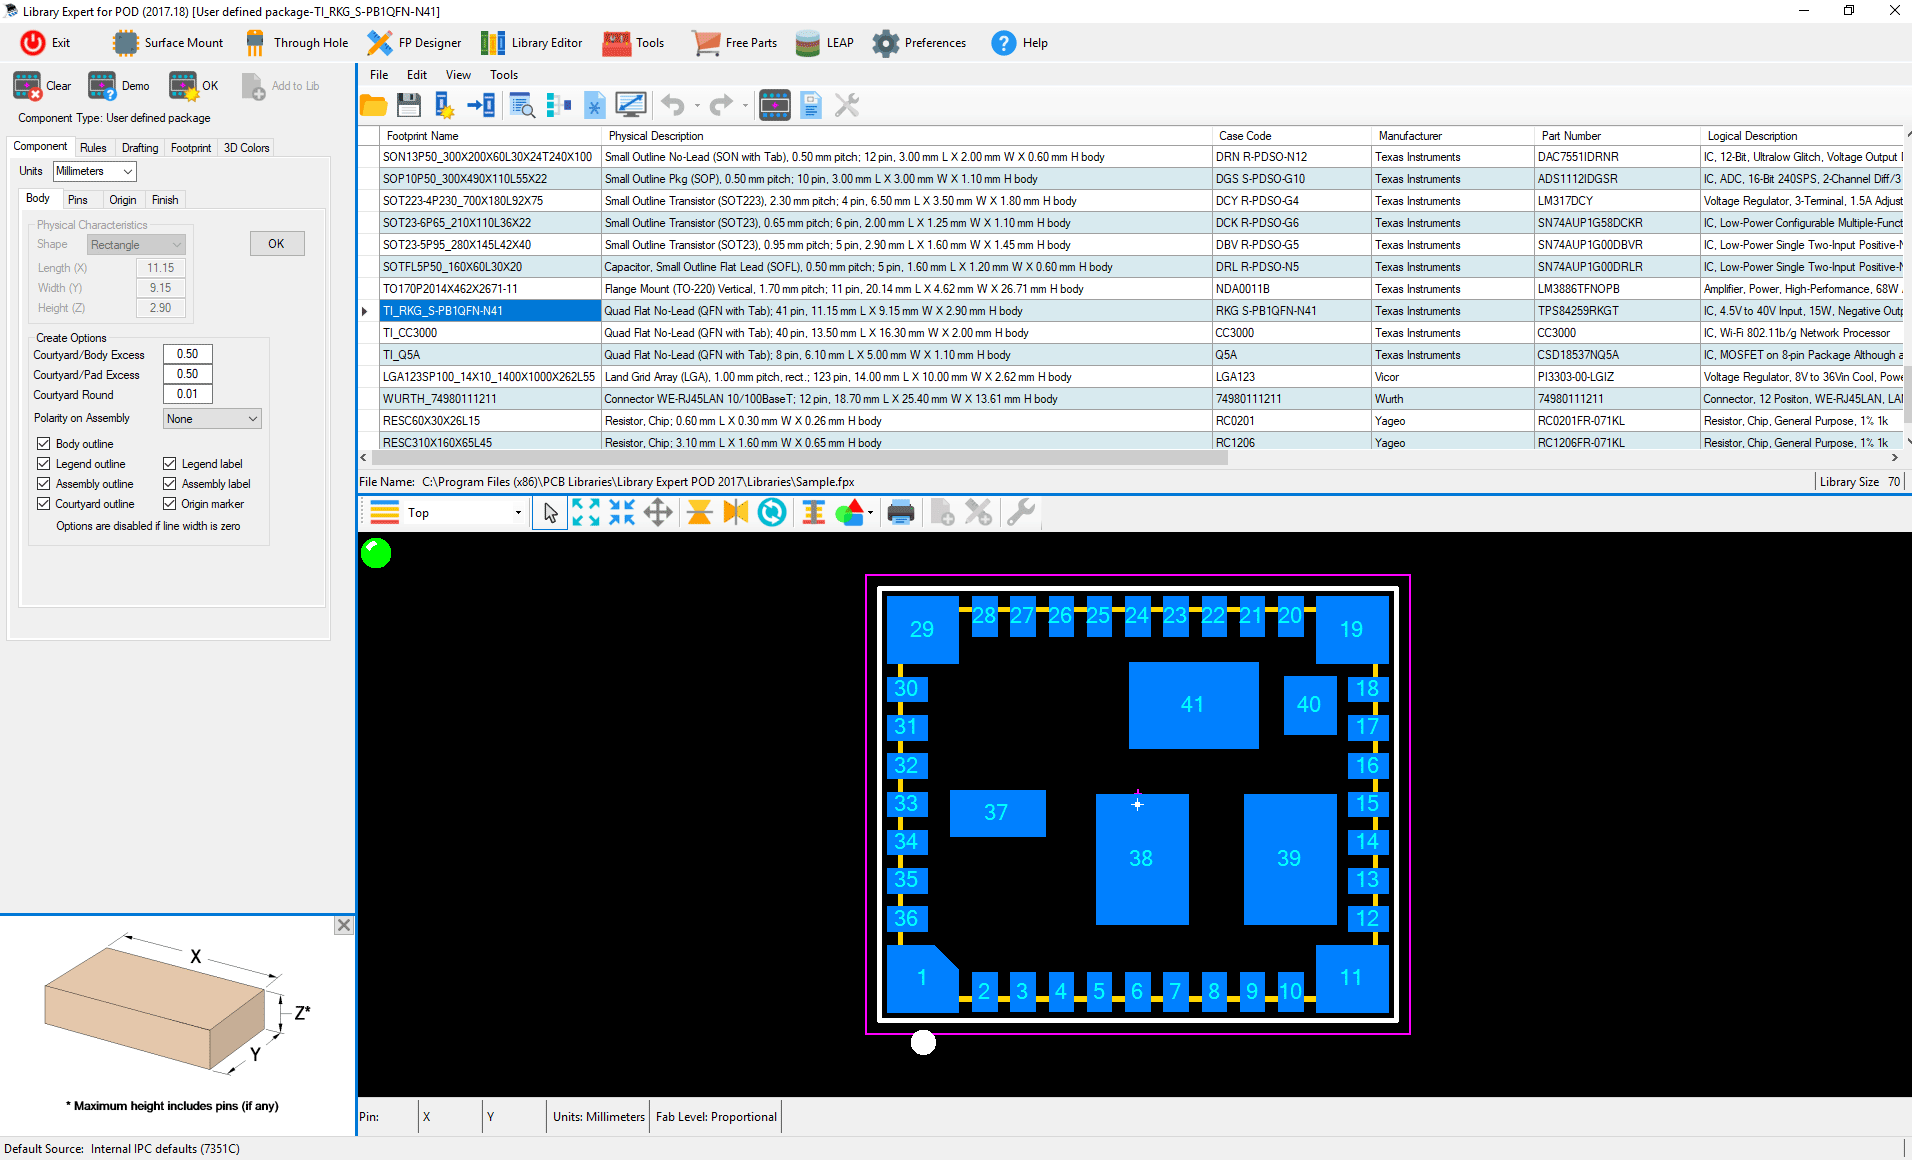 ipc standard pcb library expert POD Builder component body